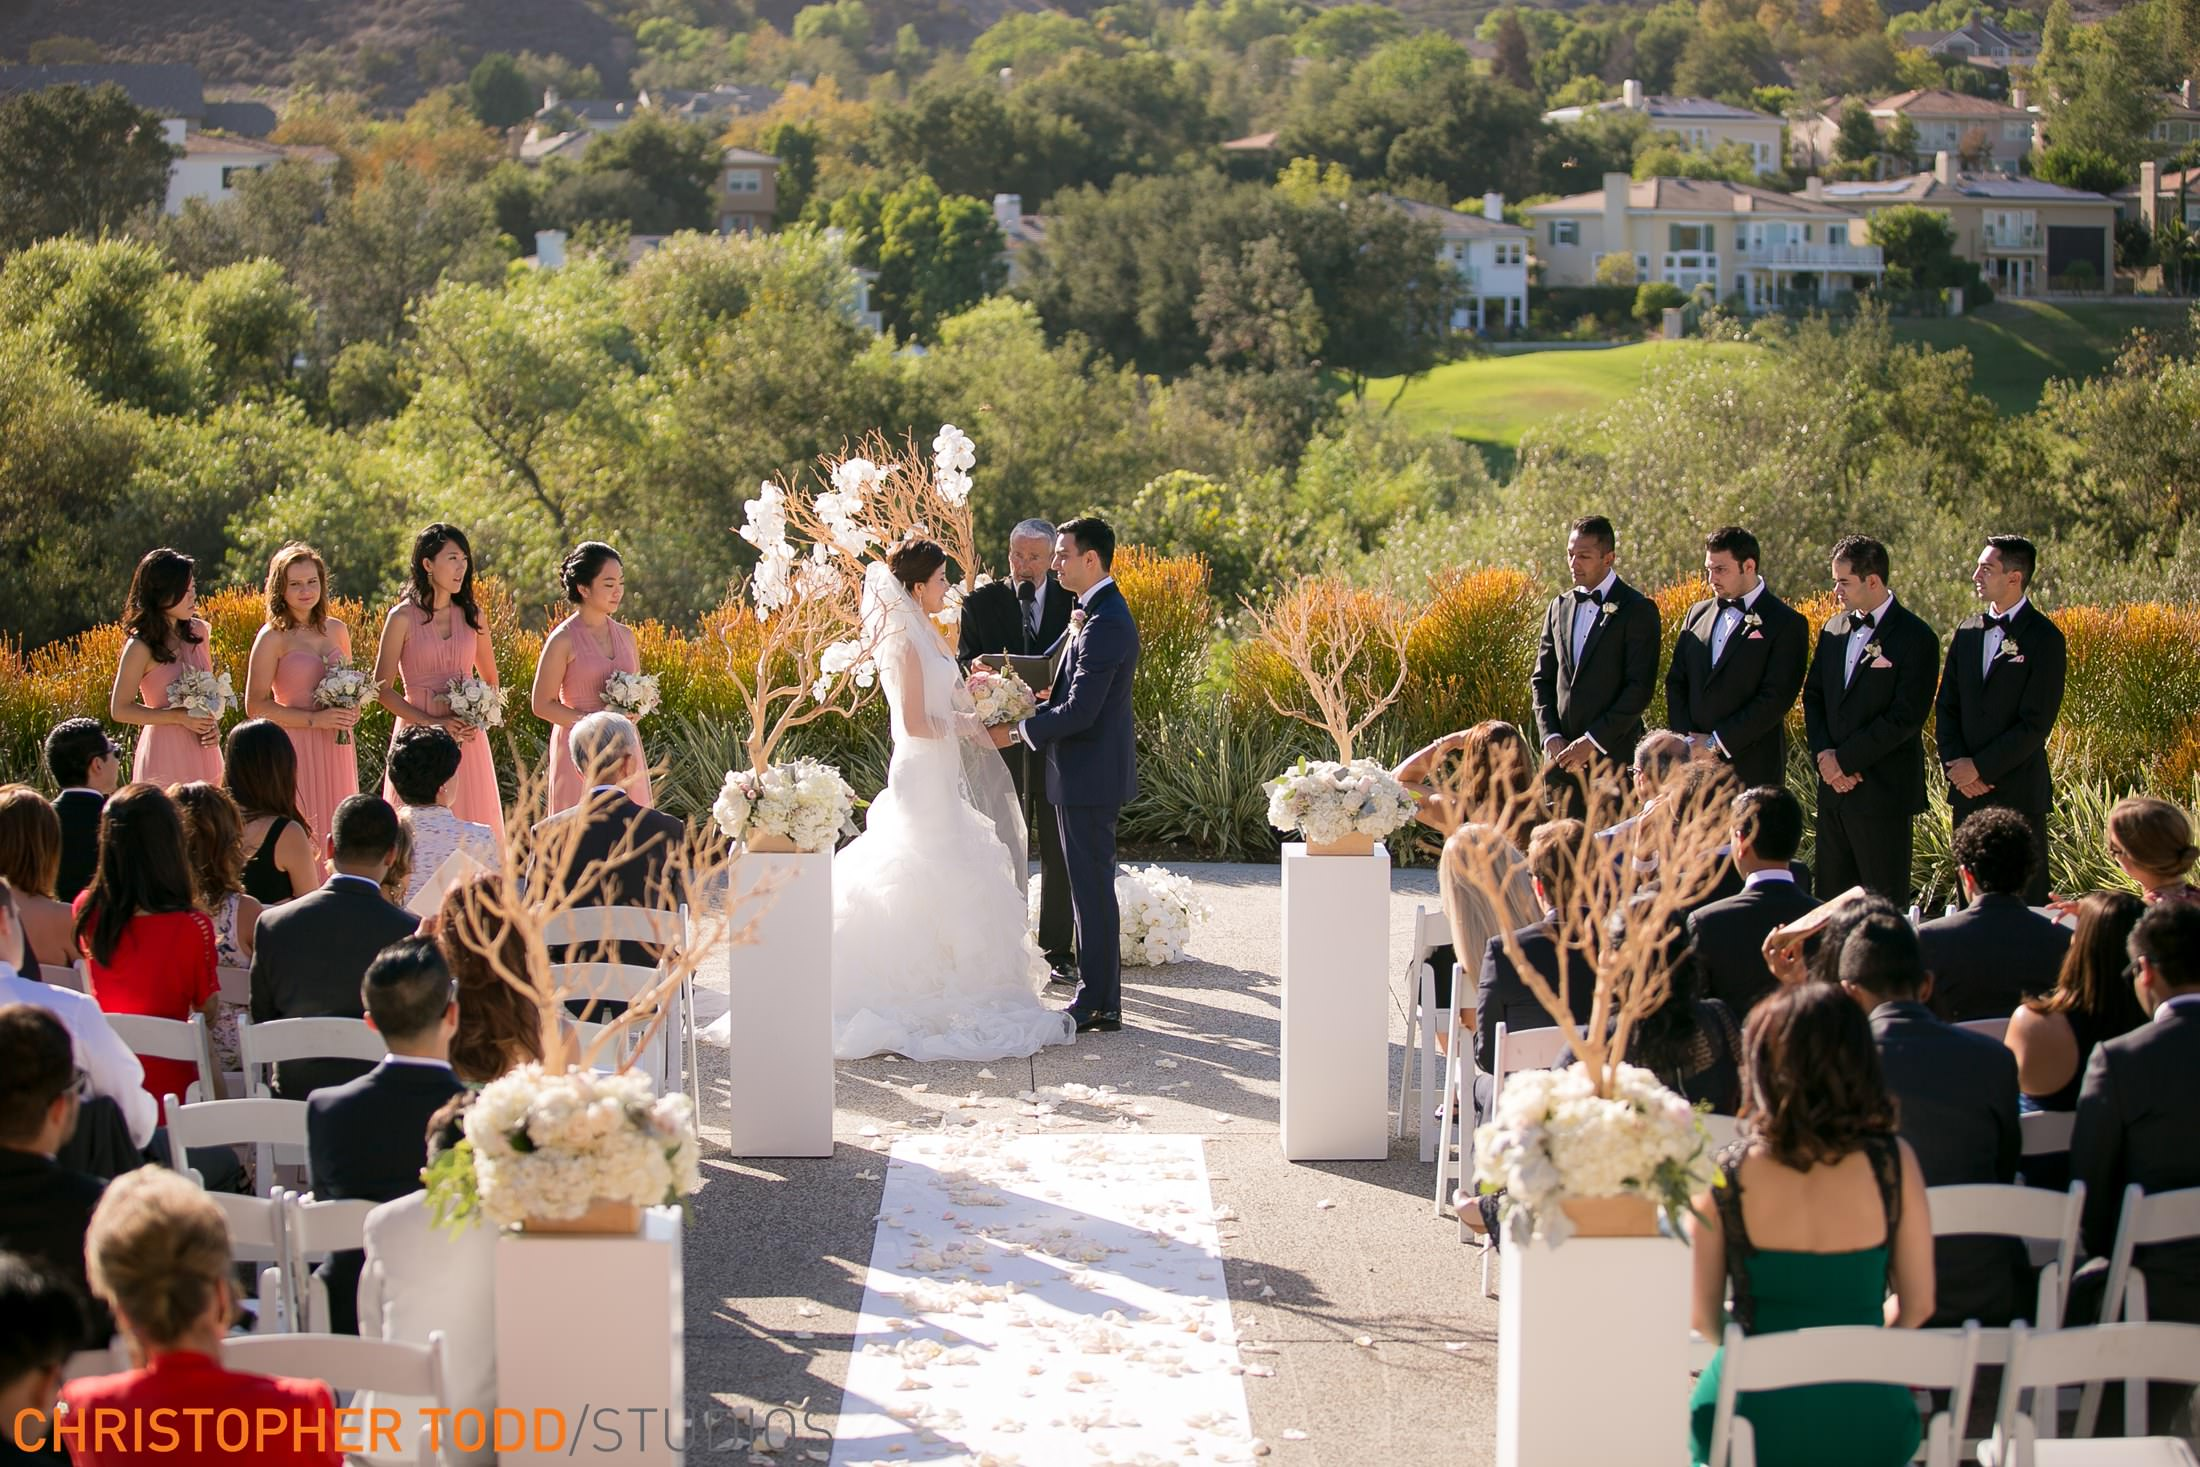 beautiful ceremony pic of couple exchanging vows